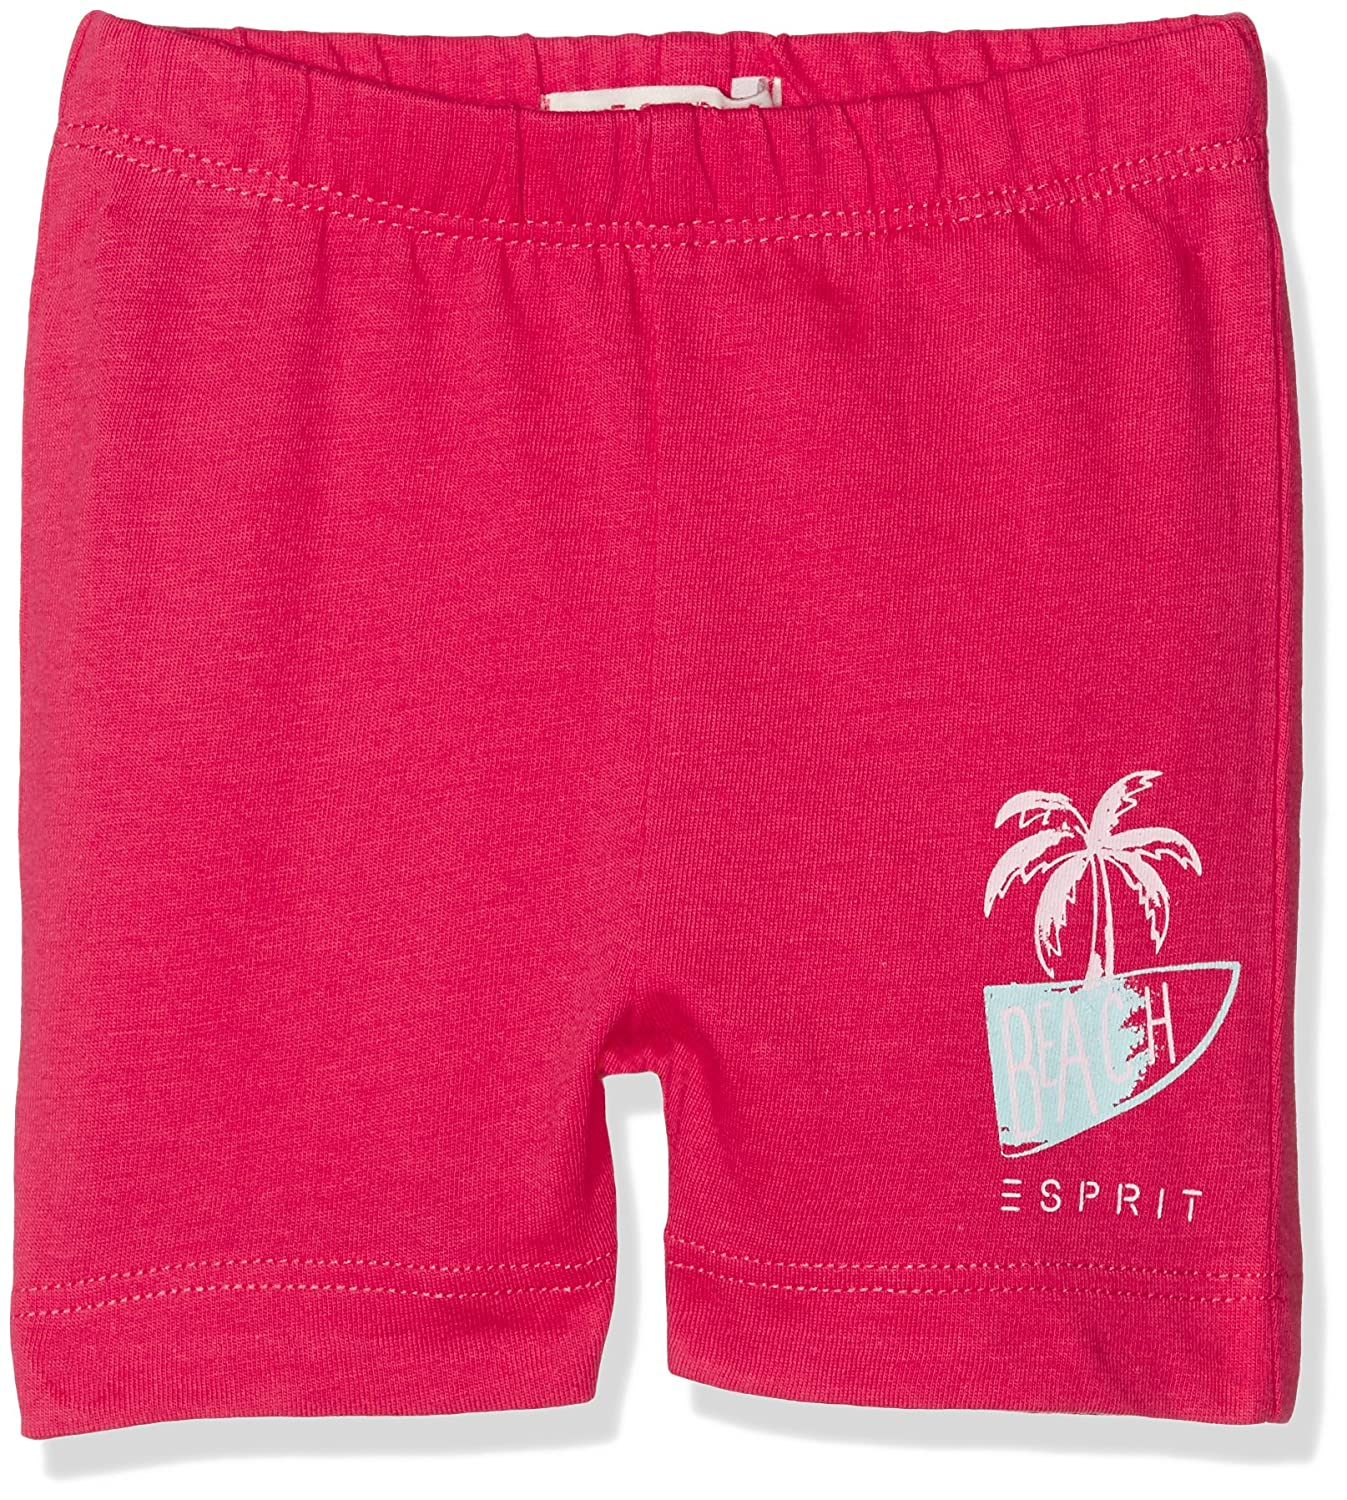 ESPRIT Baby Girls' Shorts ESPRIT Baby Girls' Shorts RL2305104